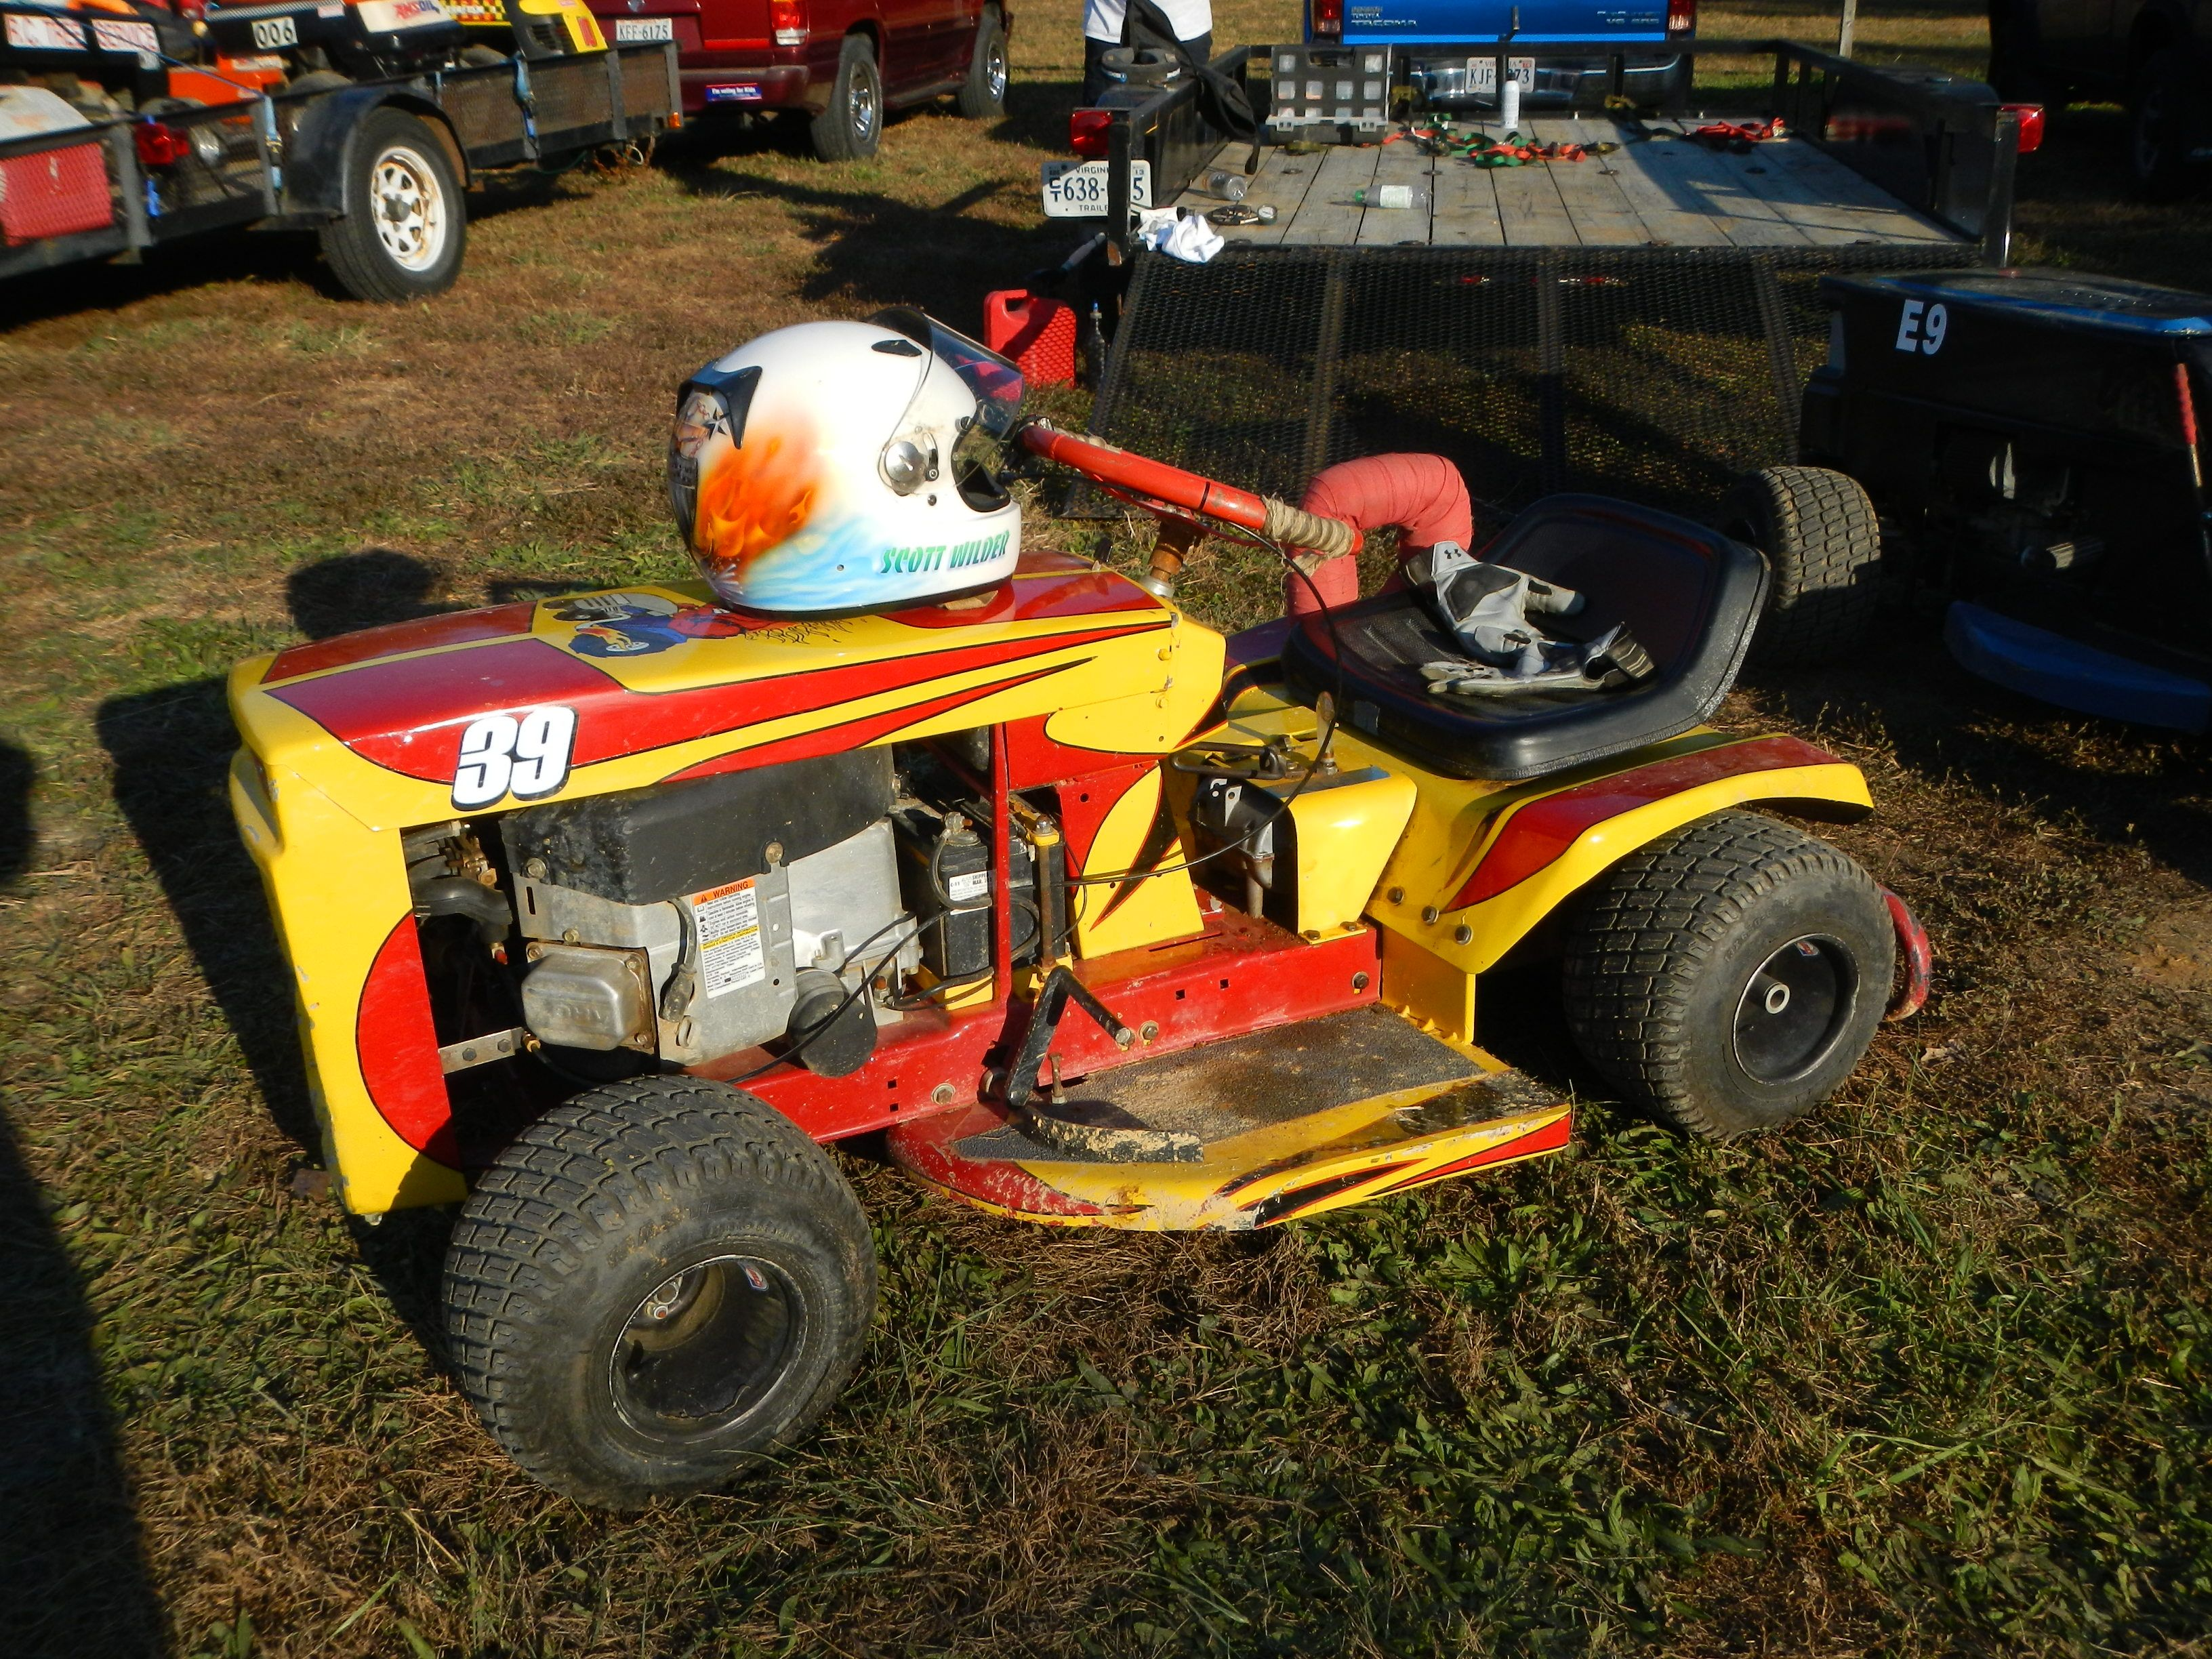 Racing Lawn Mower Parts : Suped up lawn mower for racing with the virginia